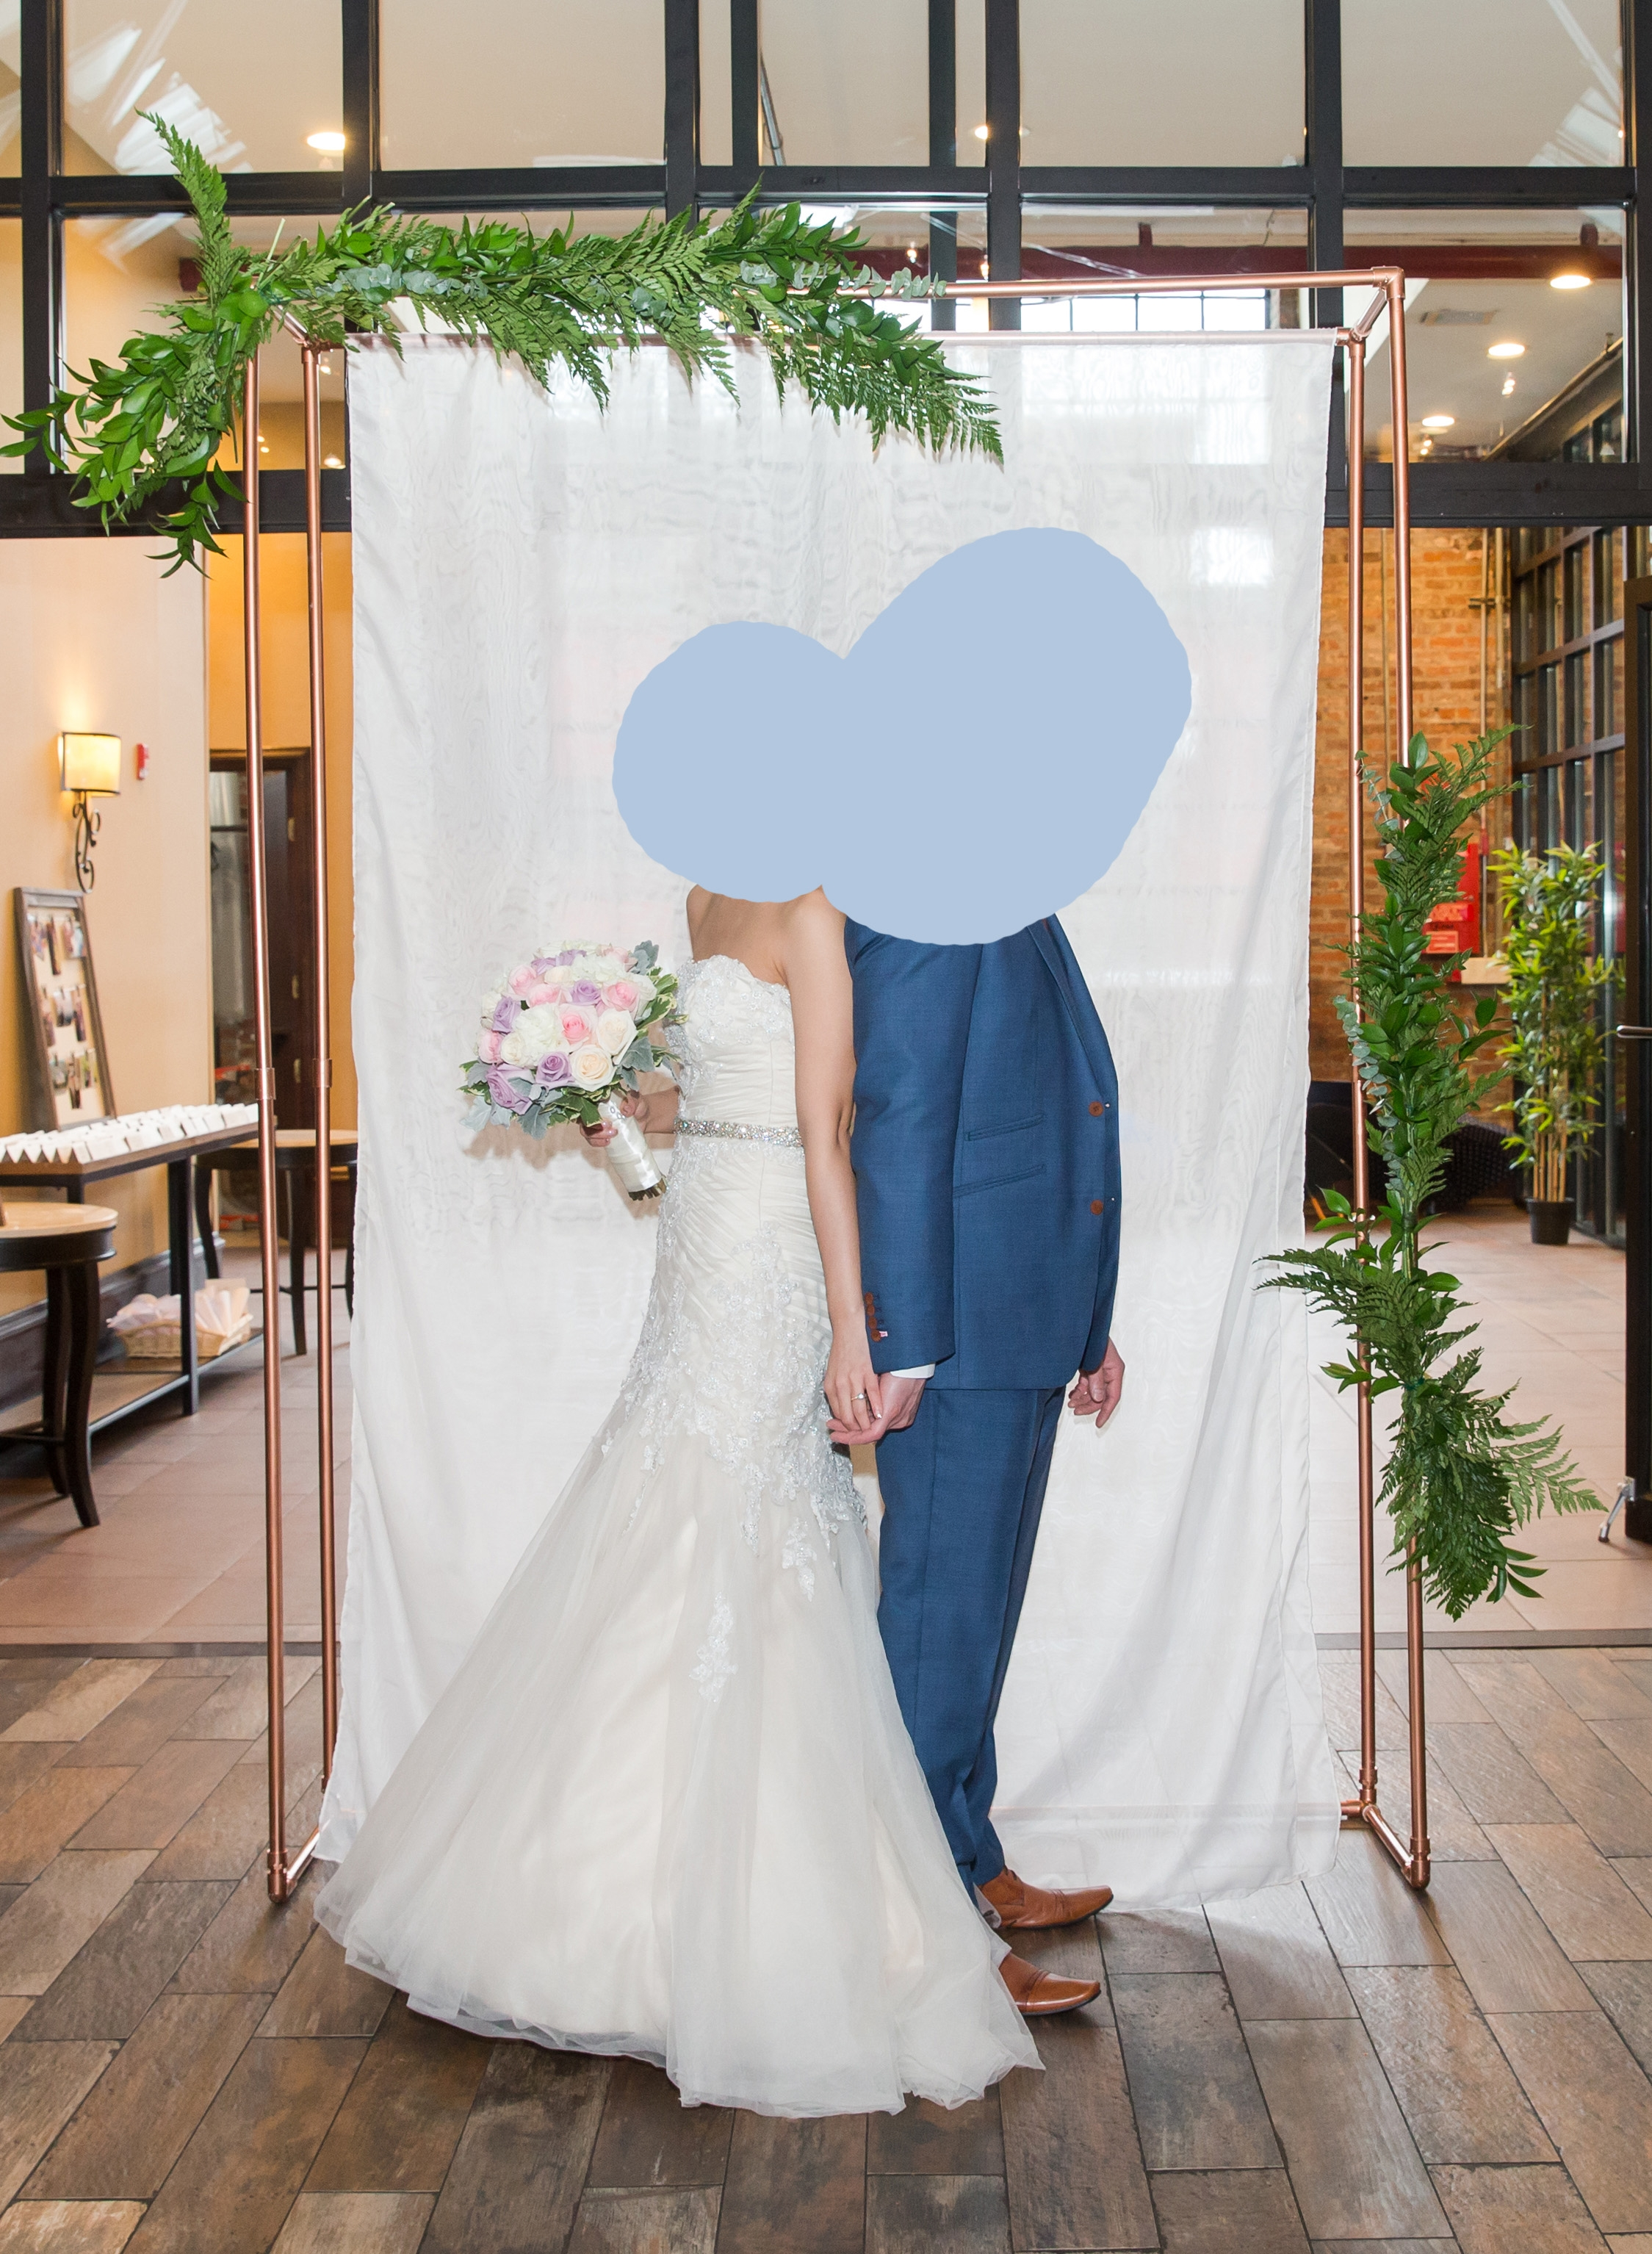 Wedding Arch Was Built From Scratch For Our Diy Pvc Pipes Were Measured Cut Spray Painted And Designed Easy Transport